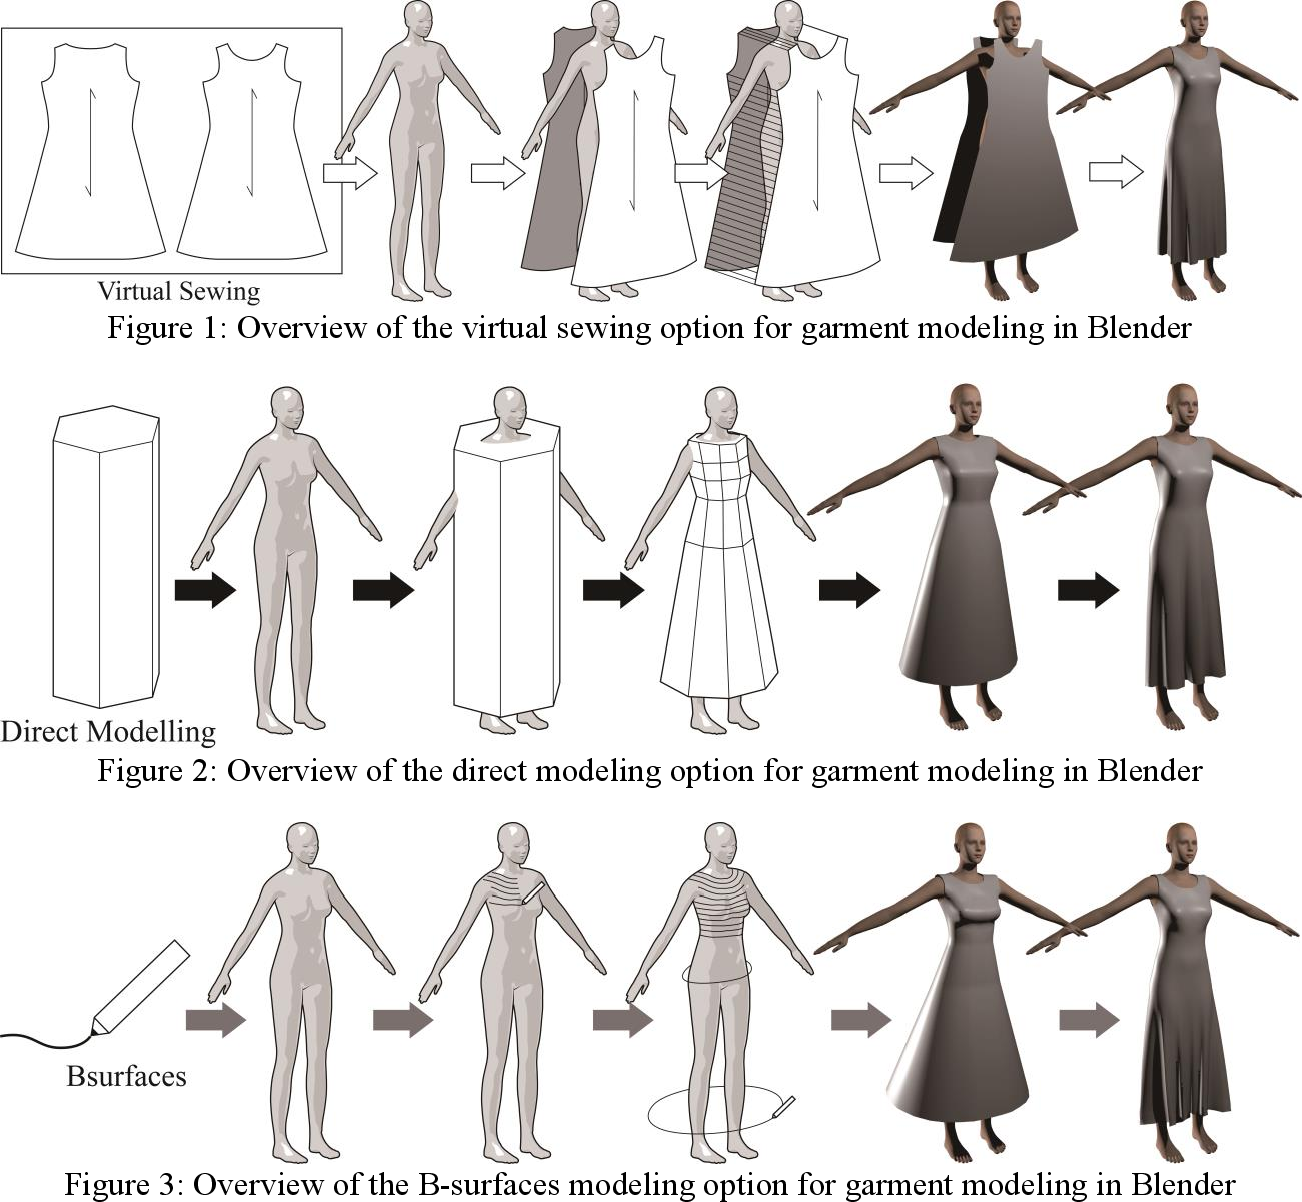 Pdf Evaluation Of Open Source Software For Use With A Clothing Virtual Try On System Semantic Scholar